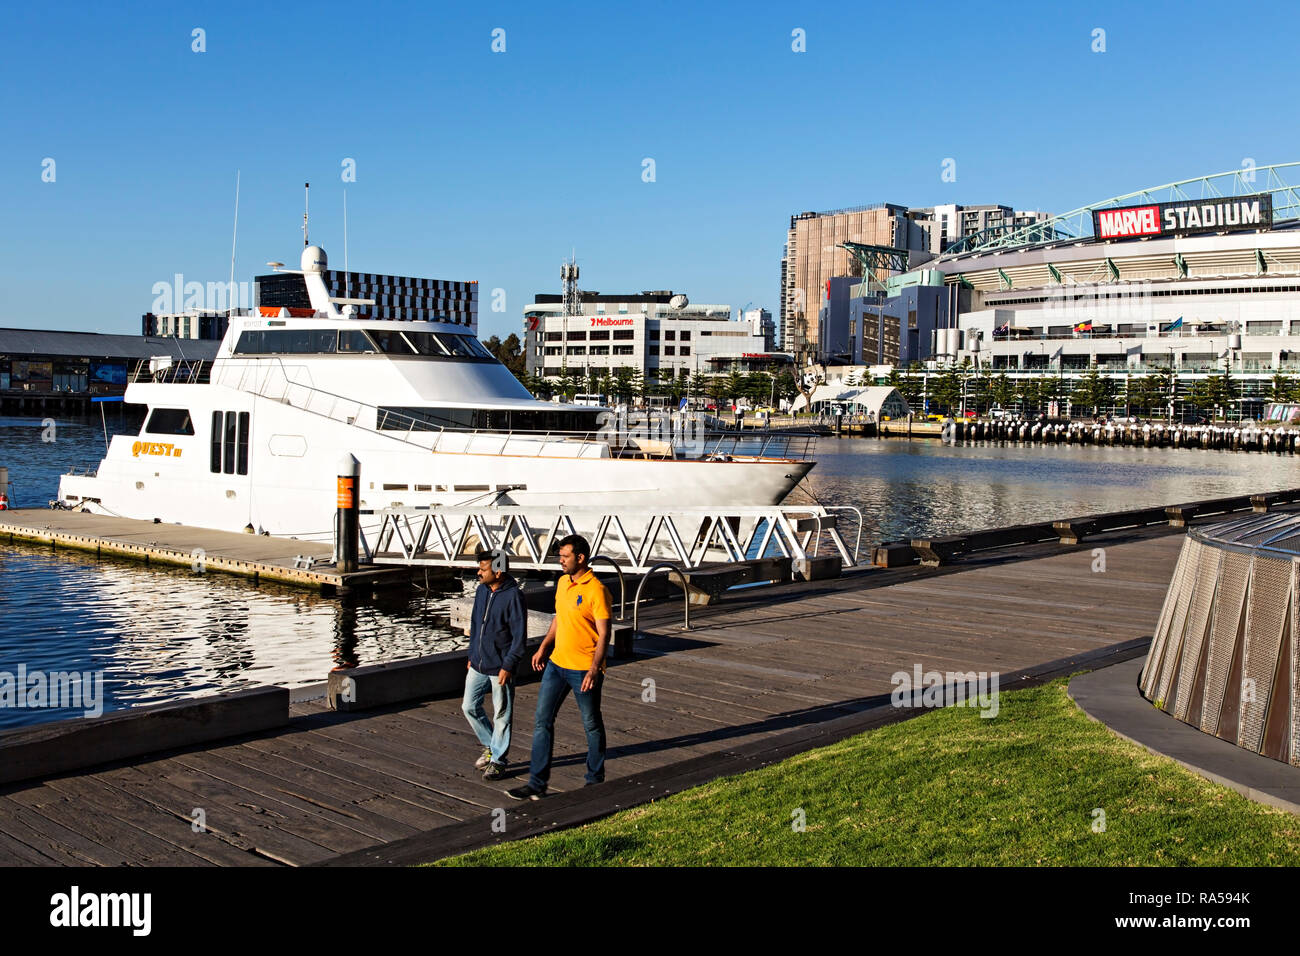 The luxury charter boat Quest iii berthed in Victoria